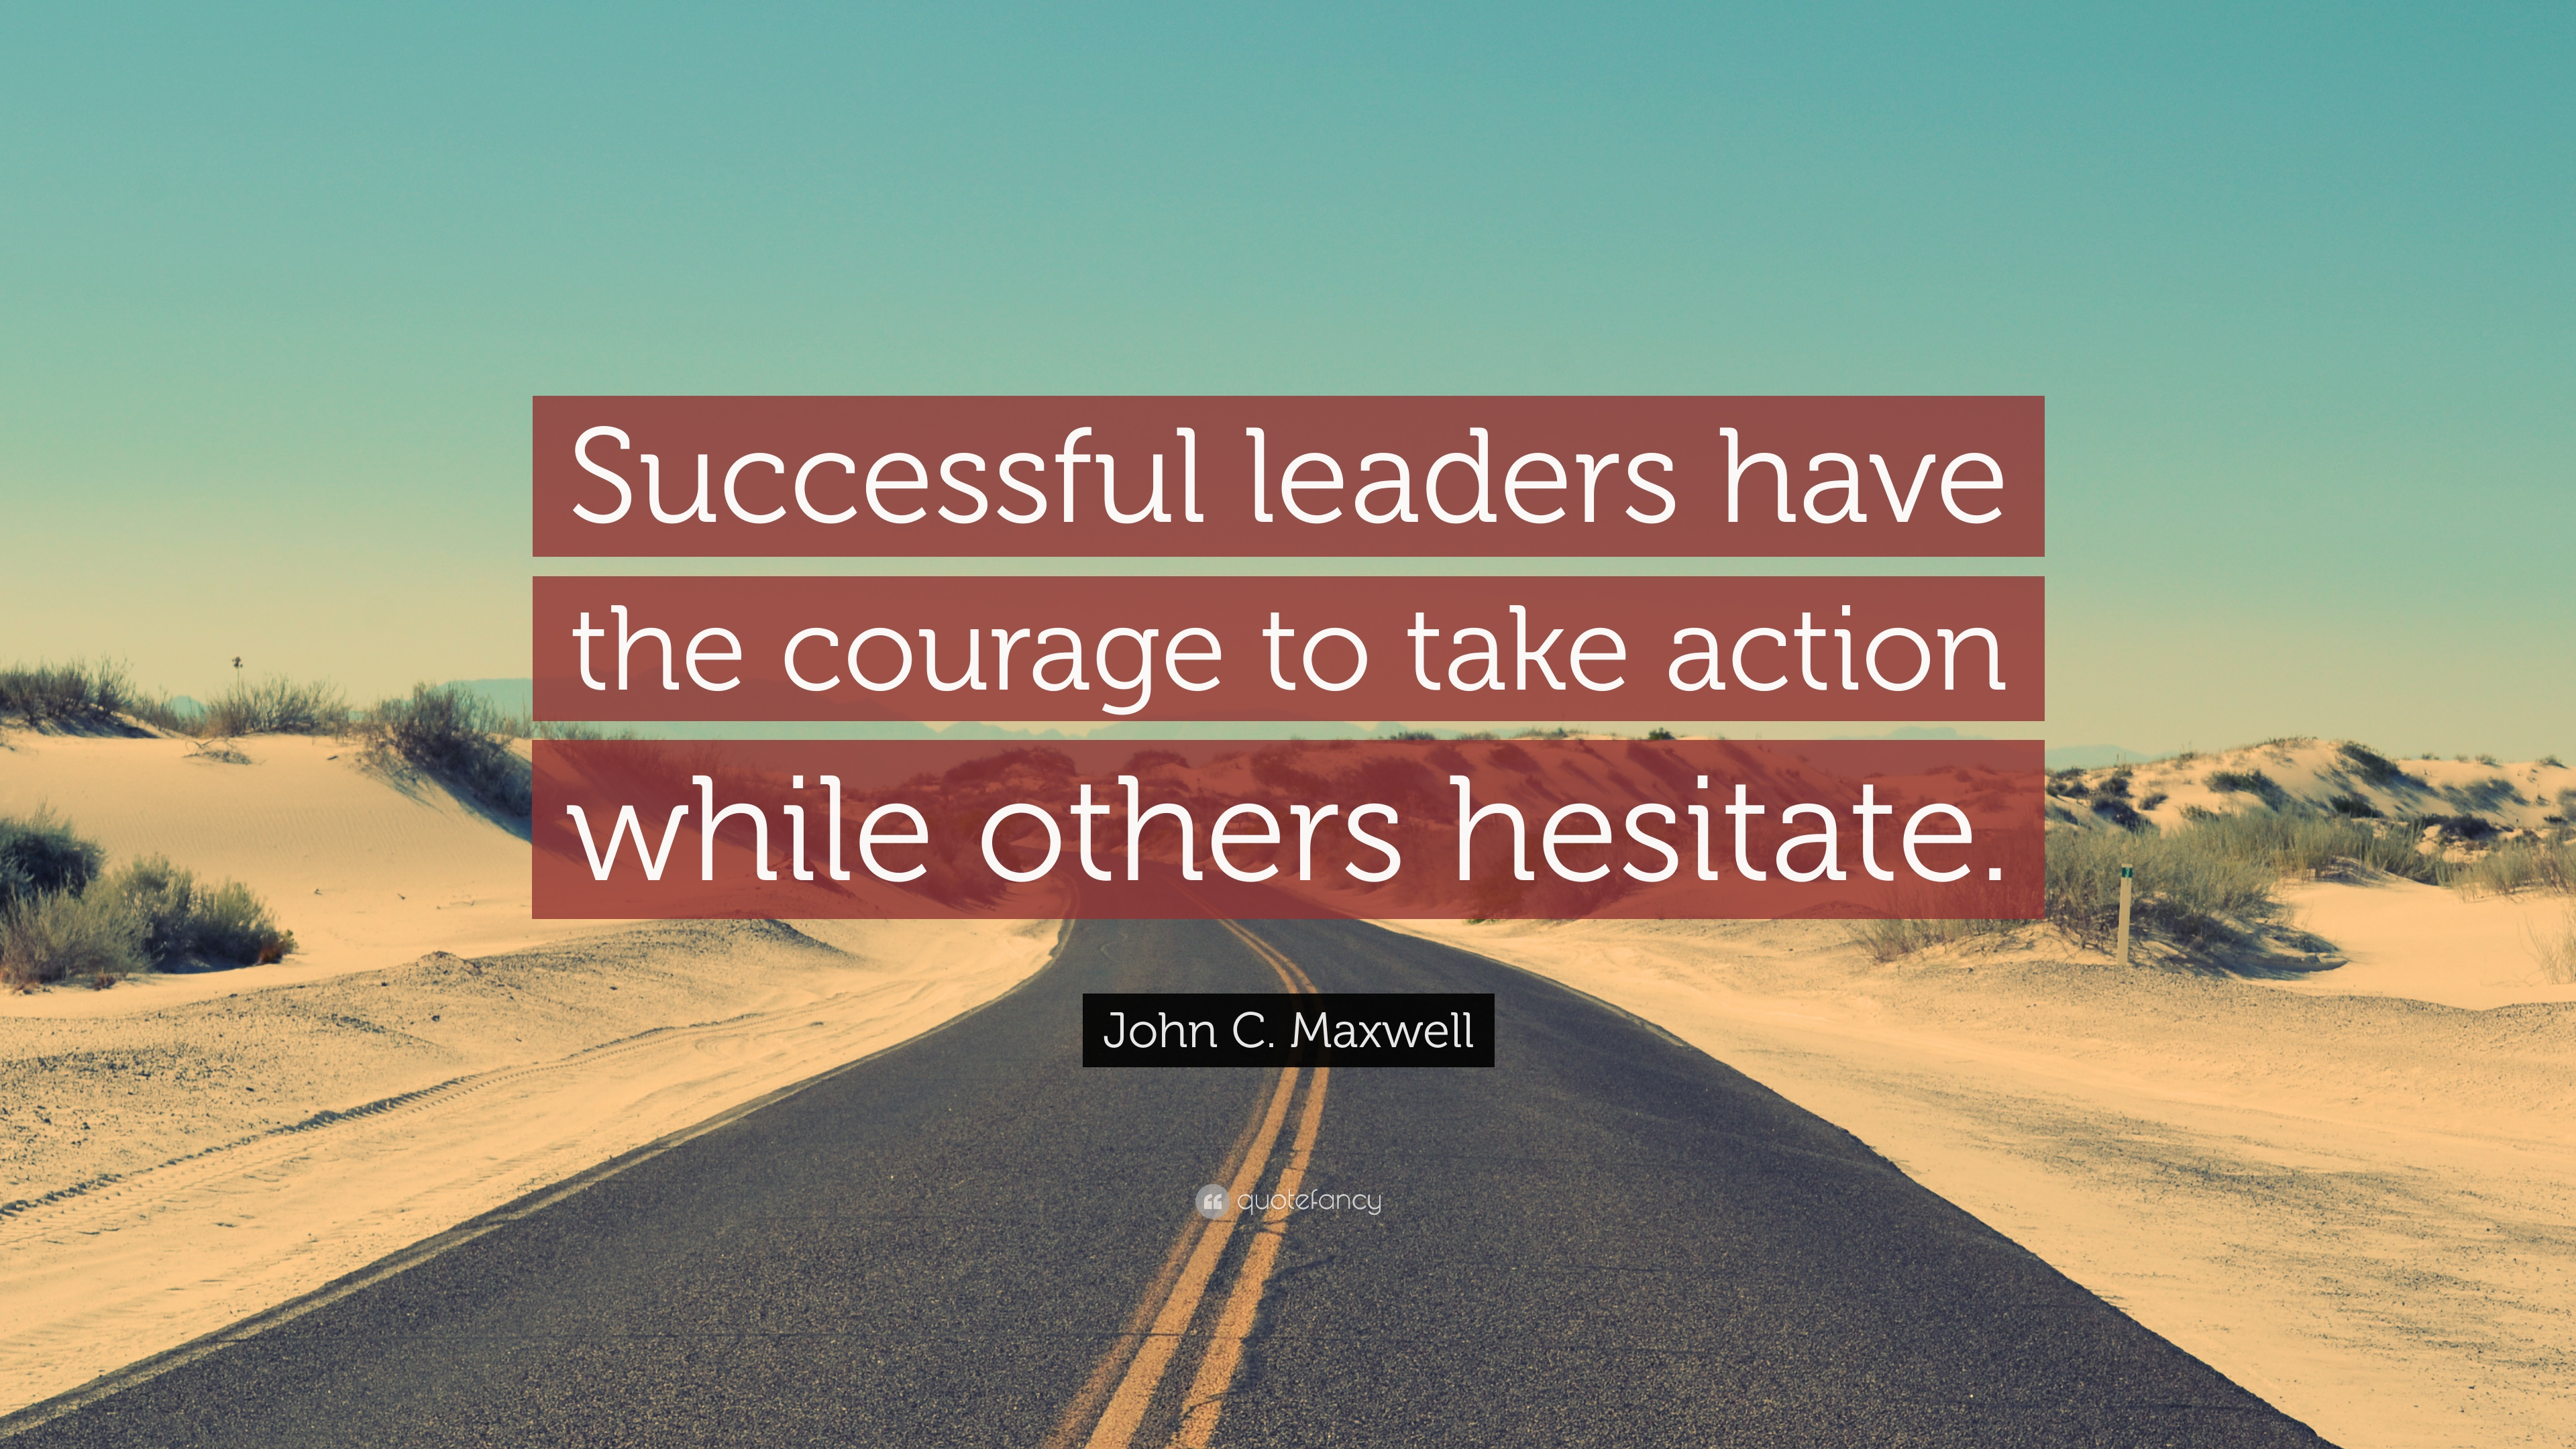 John C Maxwell Quote Successful Leaders Have The Courage To Take